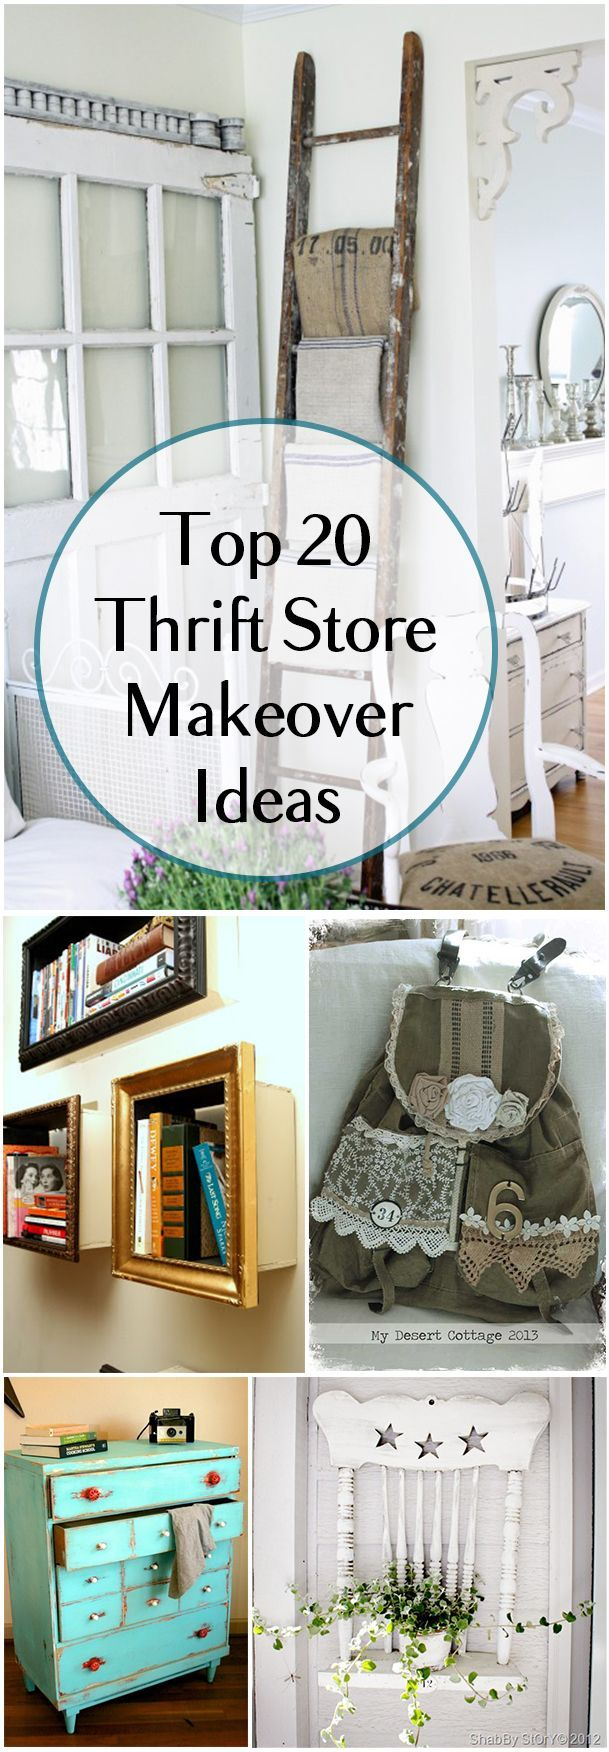 4102 Best Repair Reuse Repurpose Projects Images On Pinterest Thrift Stores Thrift Store